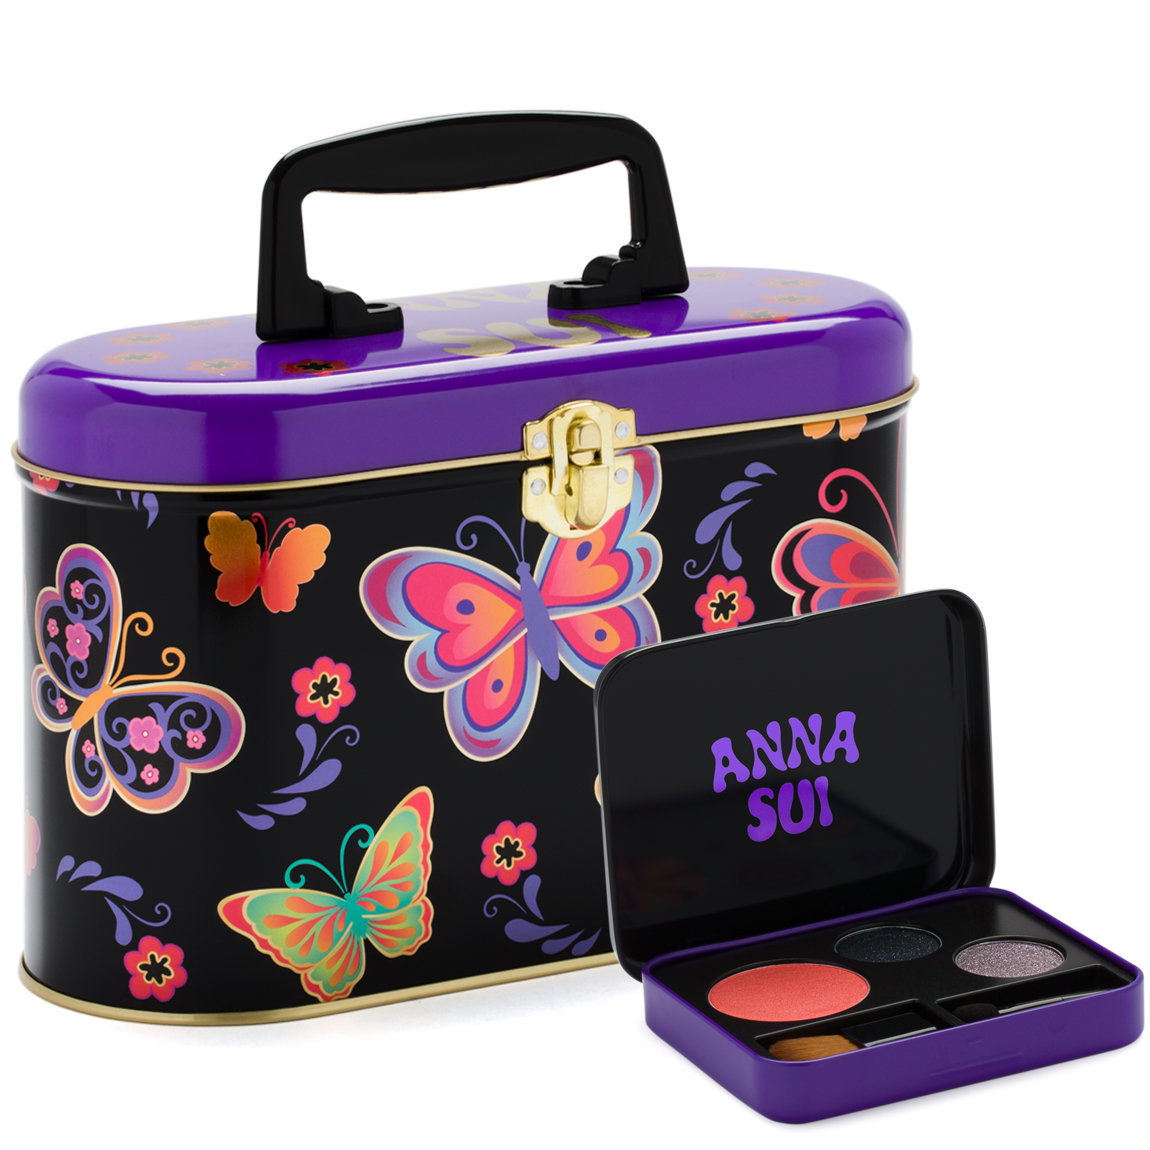 Anna Sui Makeup Coffret Set III product swatch.